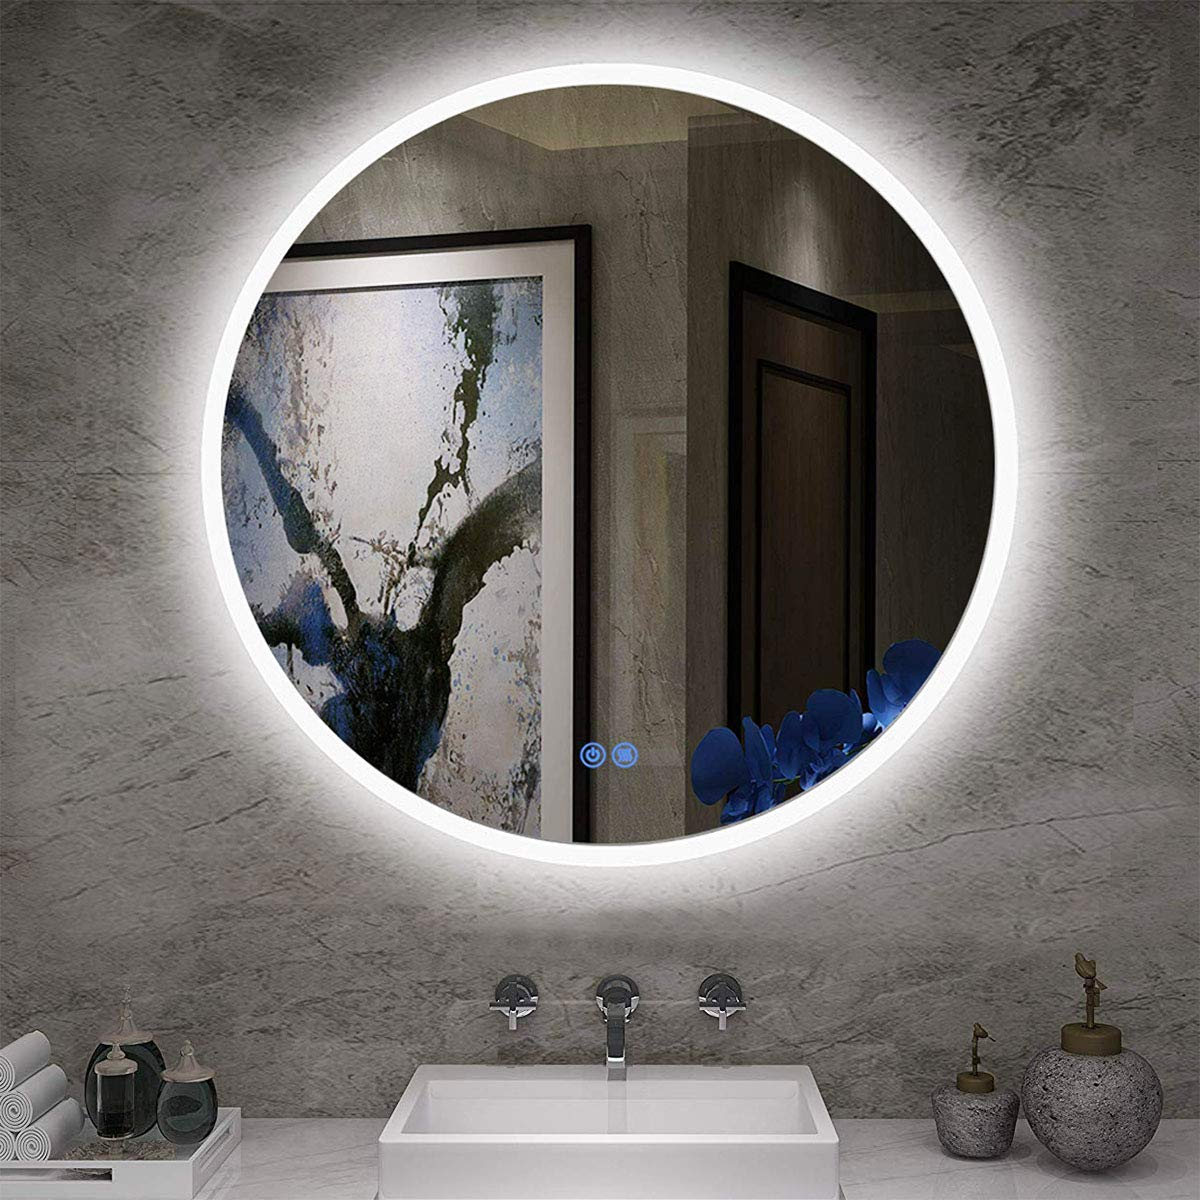 LStripM Bathroom LED Lighting Mirror R24' With Anti-fog Function Wall Mounted Backlit Thickness 5MM Round Dimmable Touch Button 6000k(Cold White)Makeup Vanity Mirror Over Cosmetic Bathroom Sink